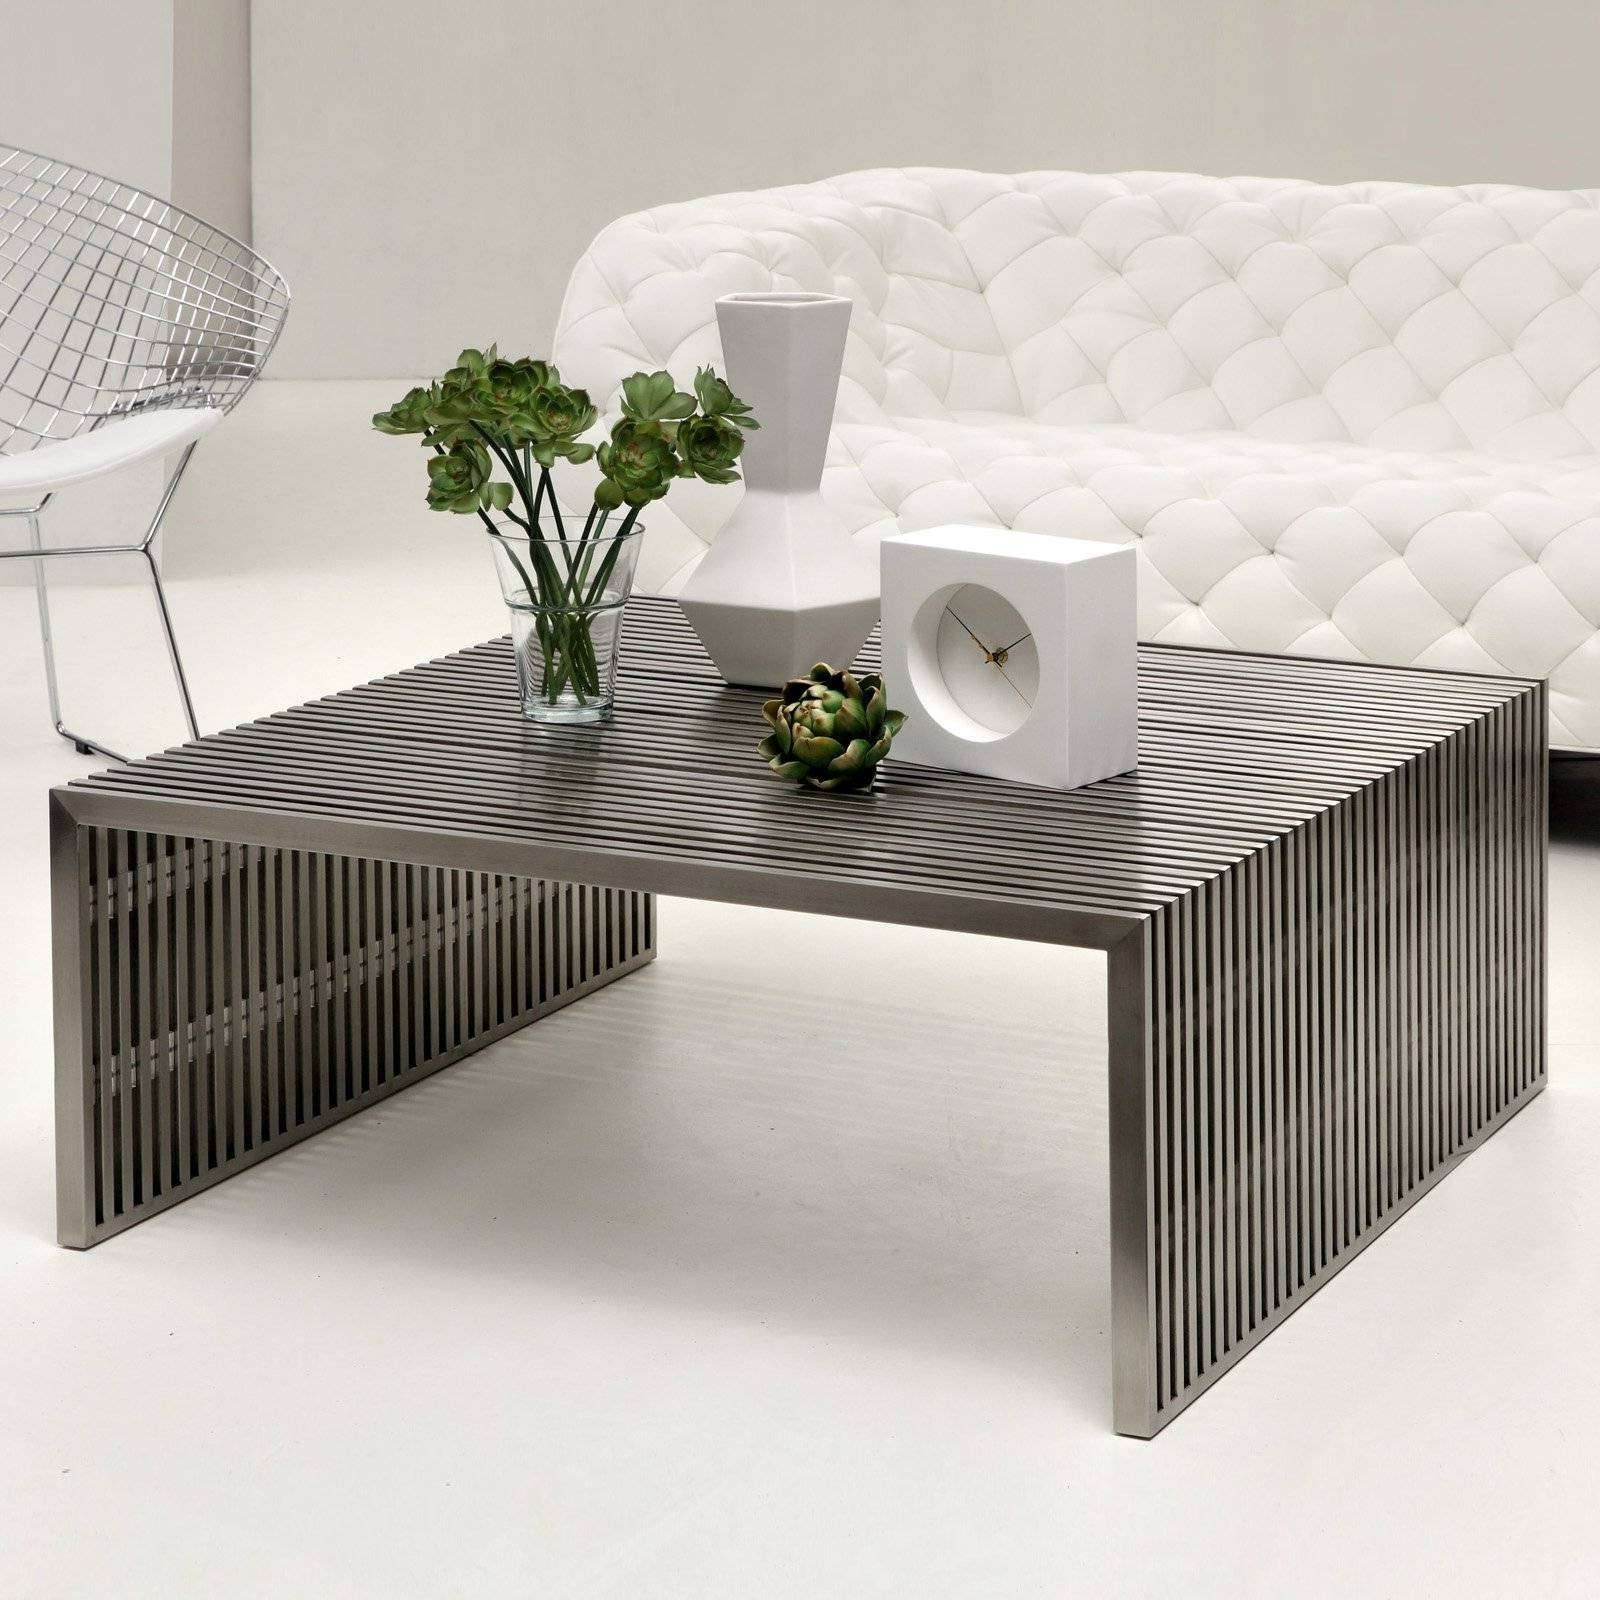 Popular Large Low Square Coffee Tables In Coffee Table : Fabulous Low Square Teak Coffee Table Large Square (View 18 of 20)